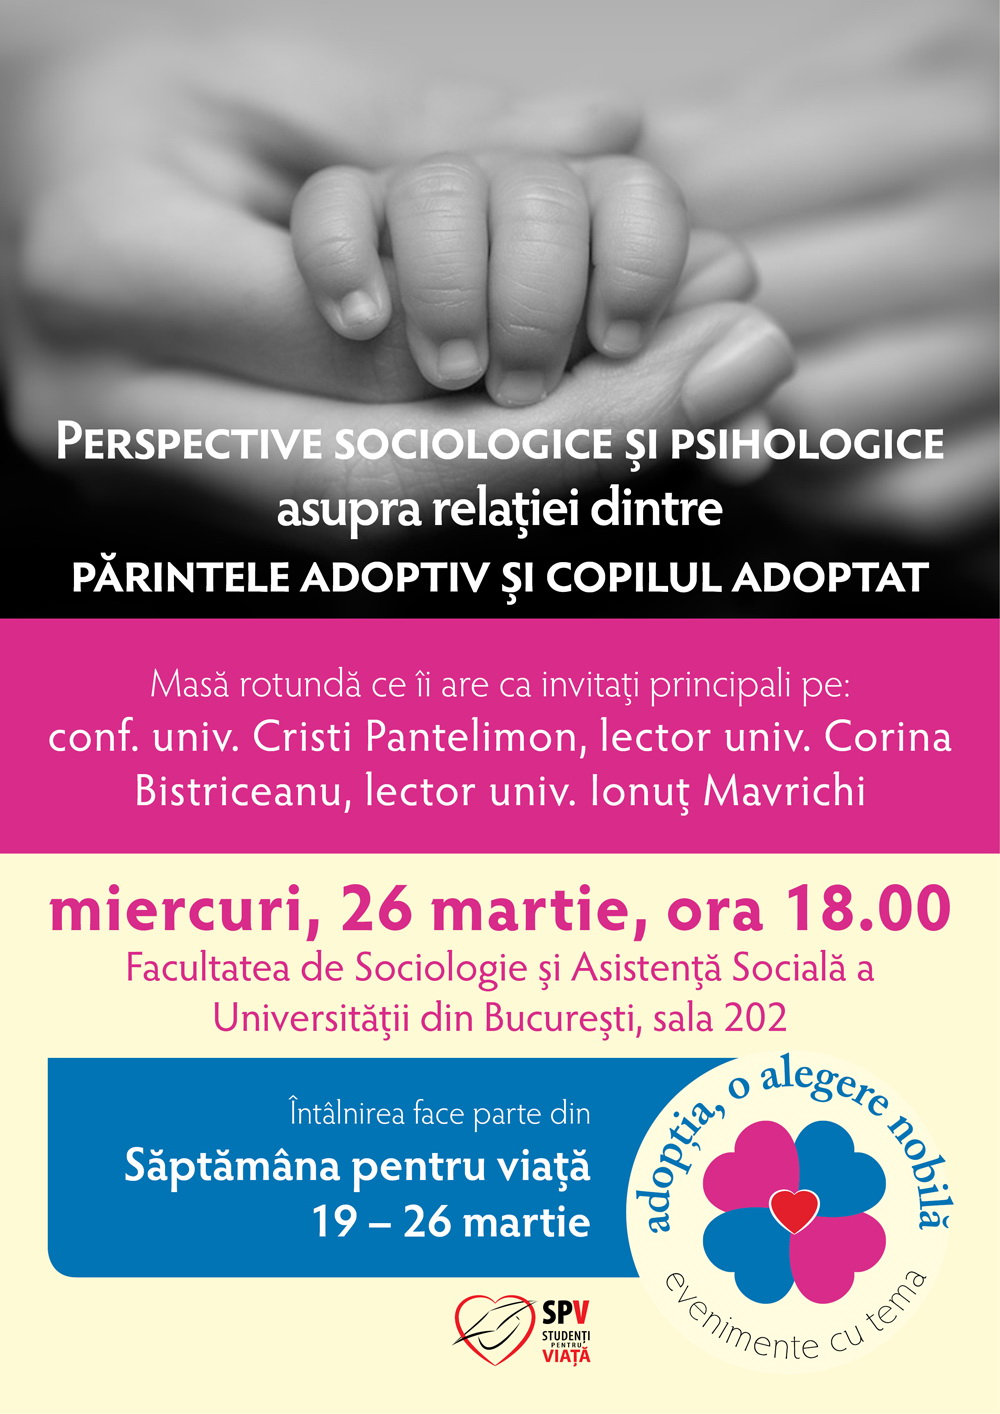 Photo of Romania's Pro-Life Week 2014: A Sociological and Anthropological View on Adoption